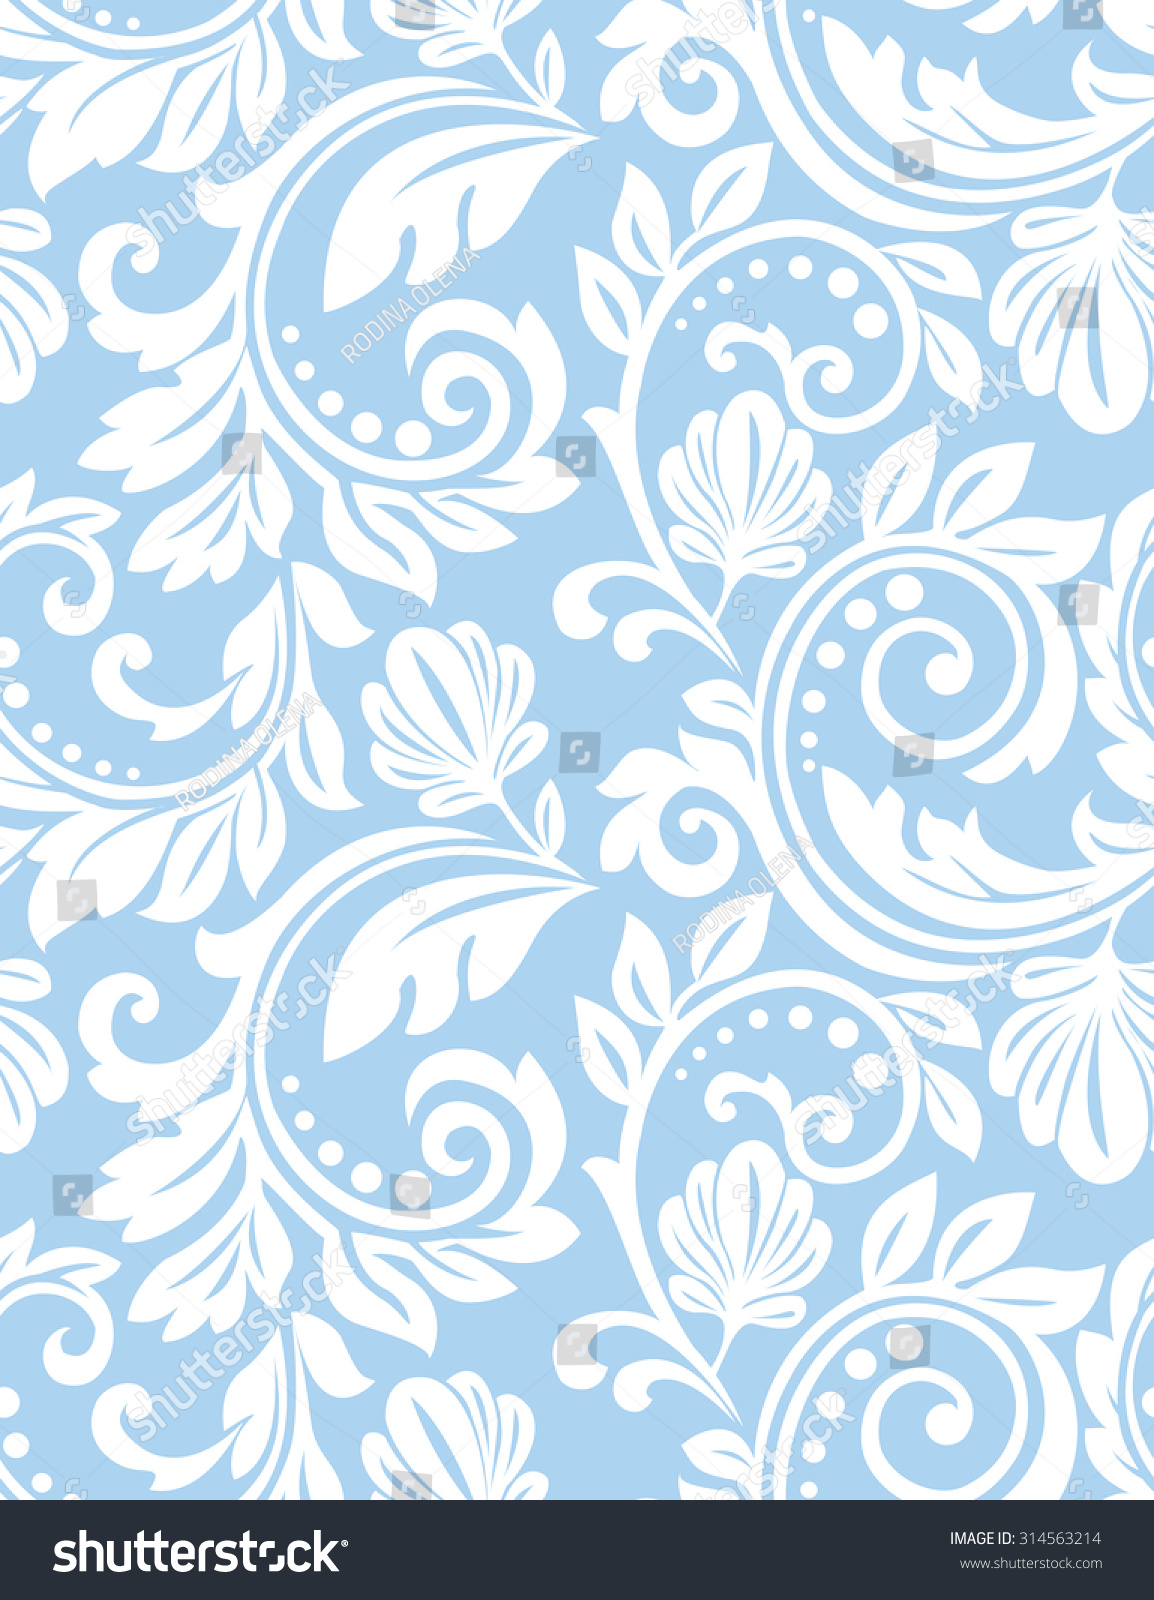 wallpaper baroque damask seamless vector background blue and white ornament